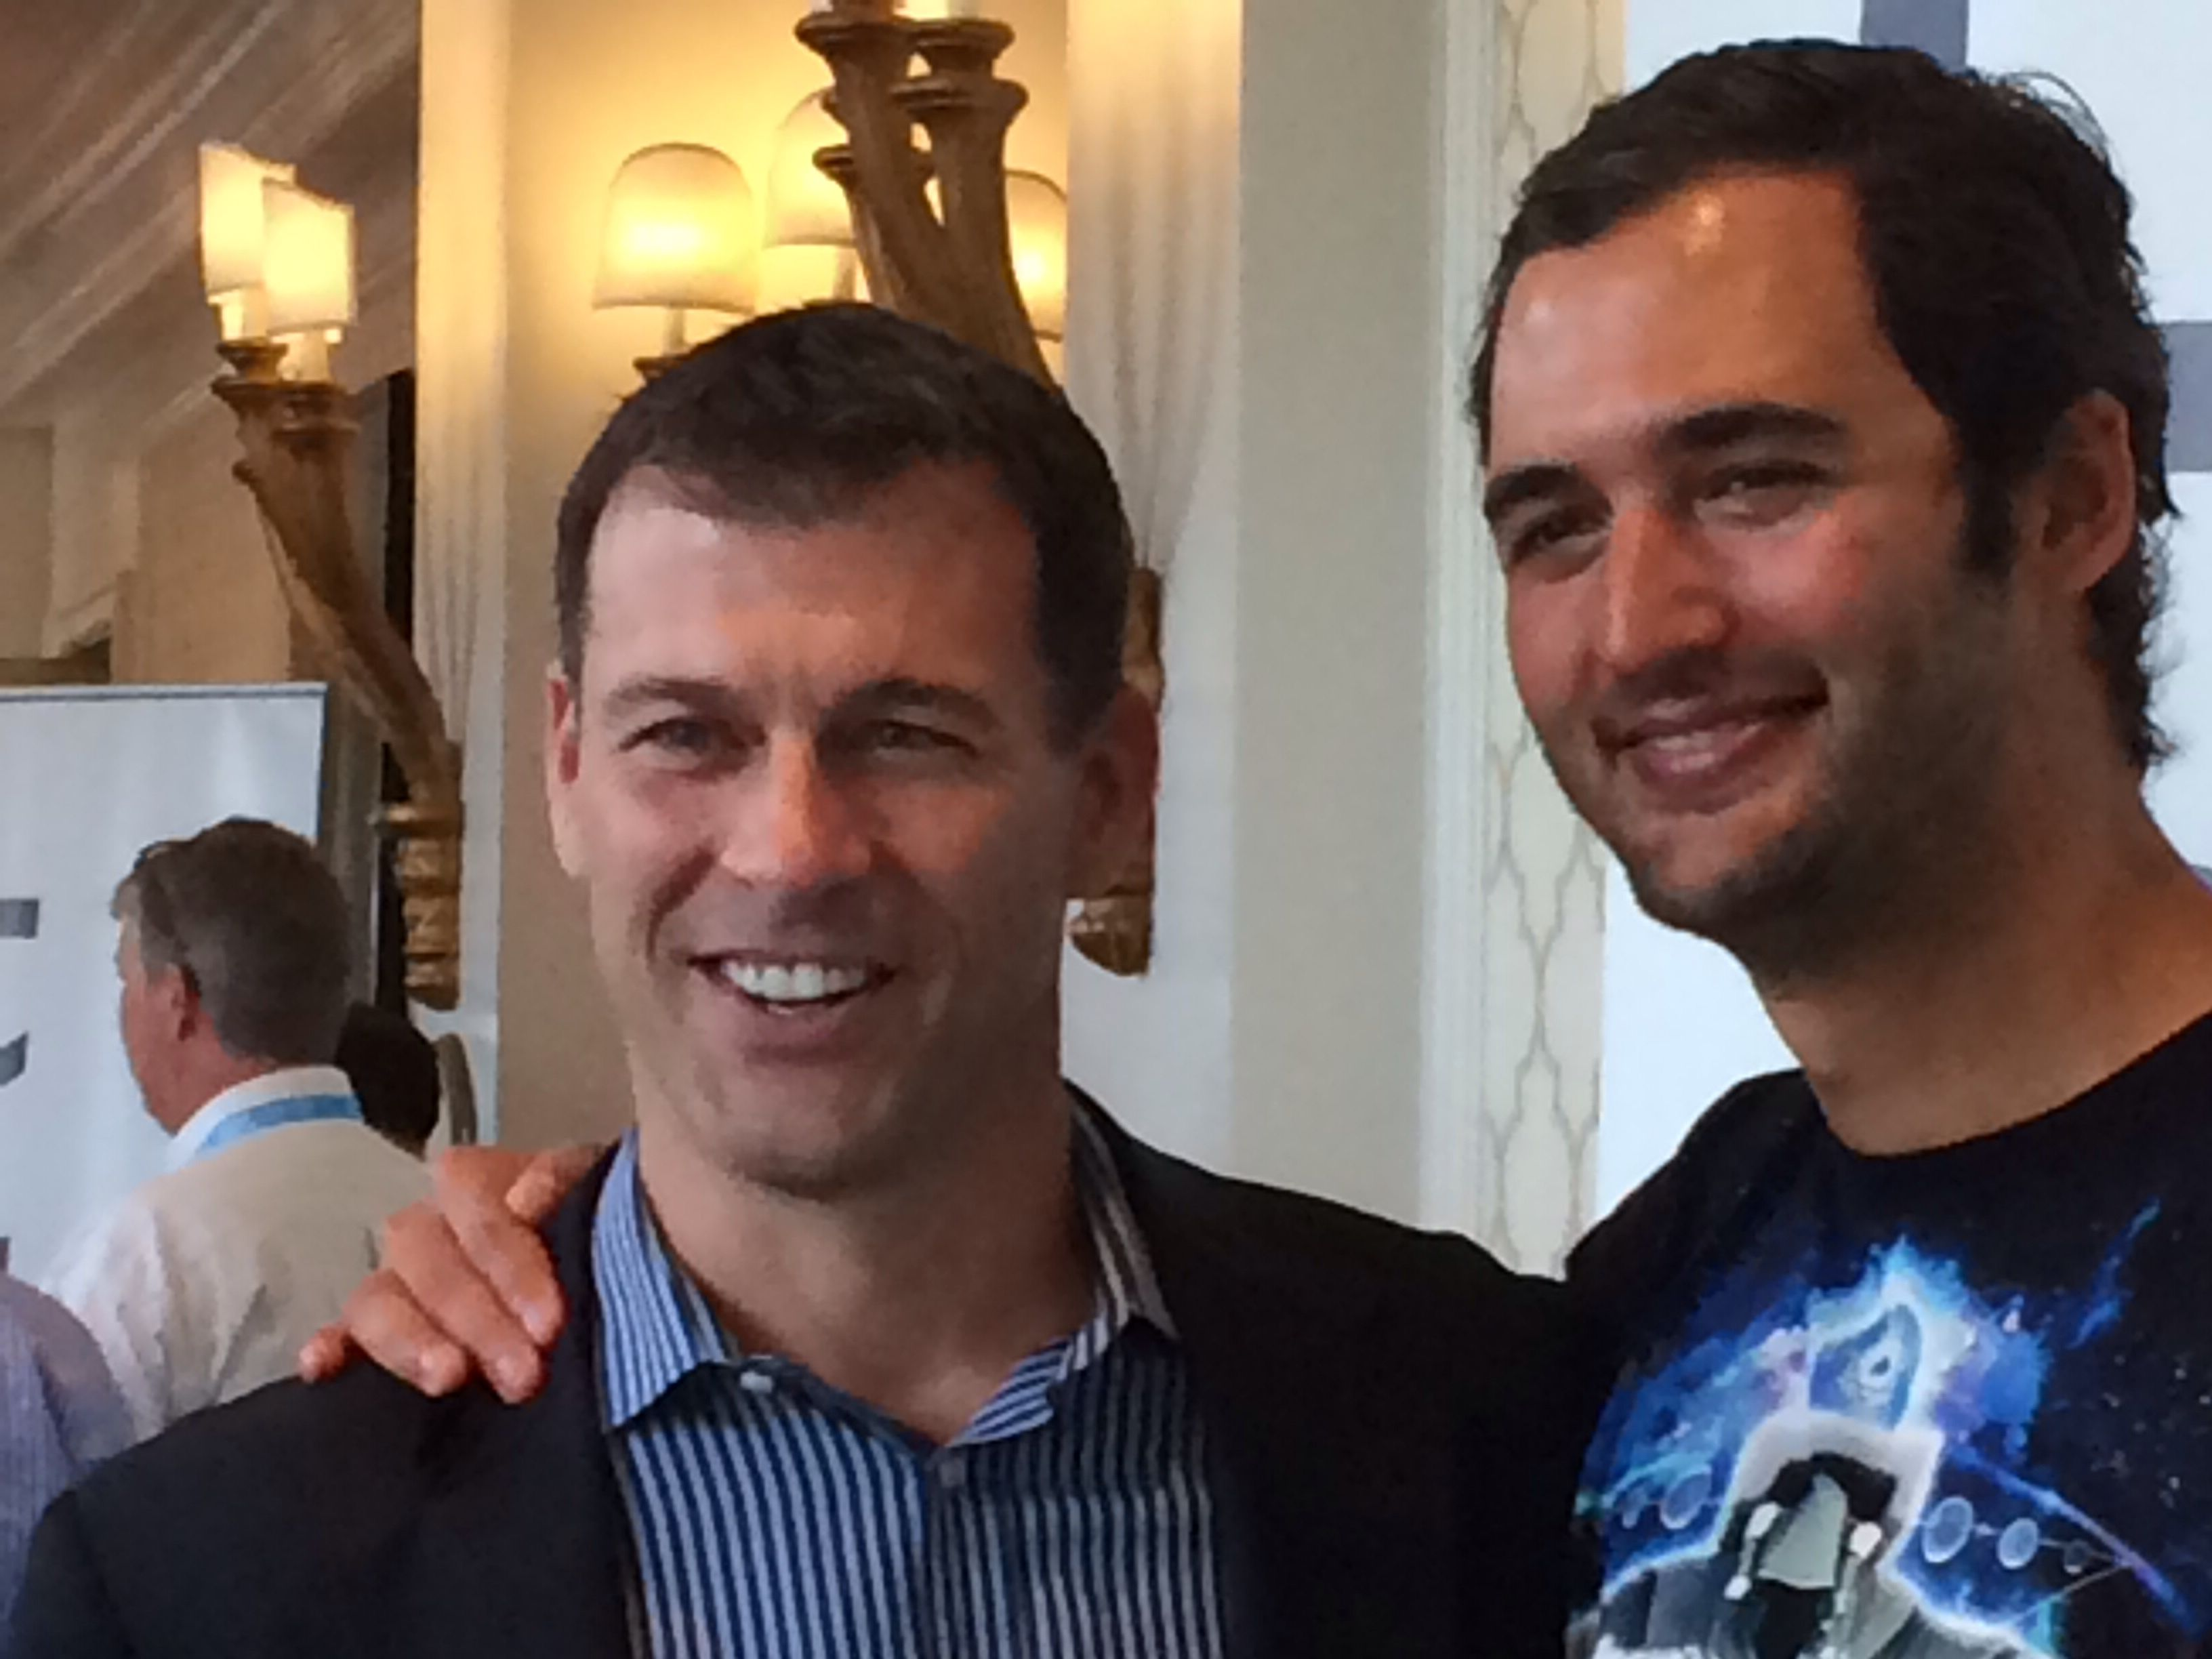 Jason Silva from the National Geographic's Brain Games spoke on the importance of futuristic technology. @ritzcarlton